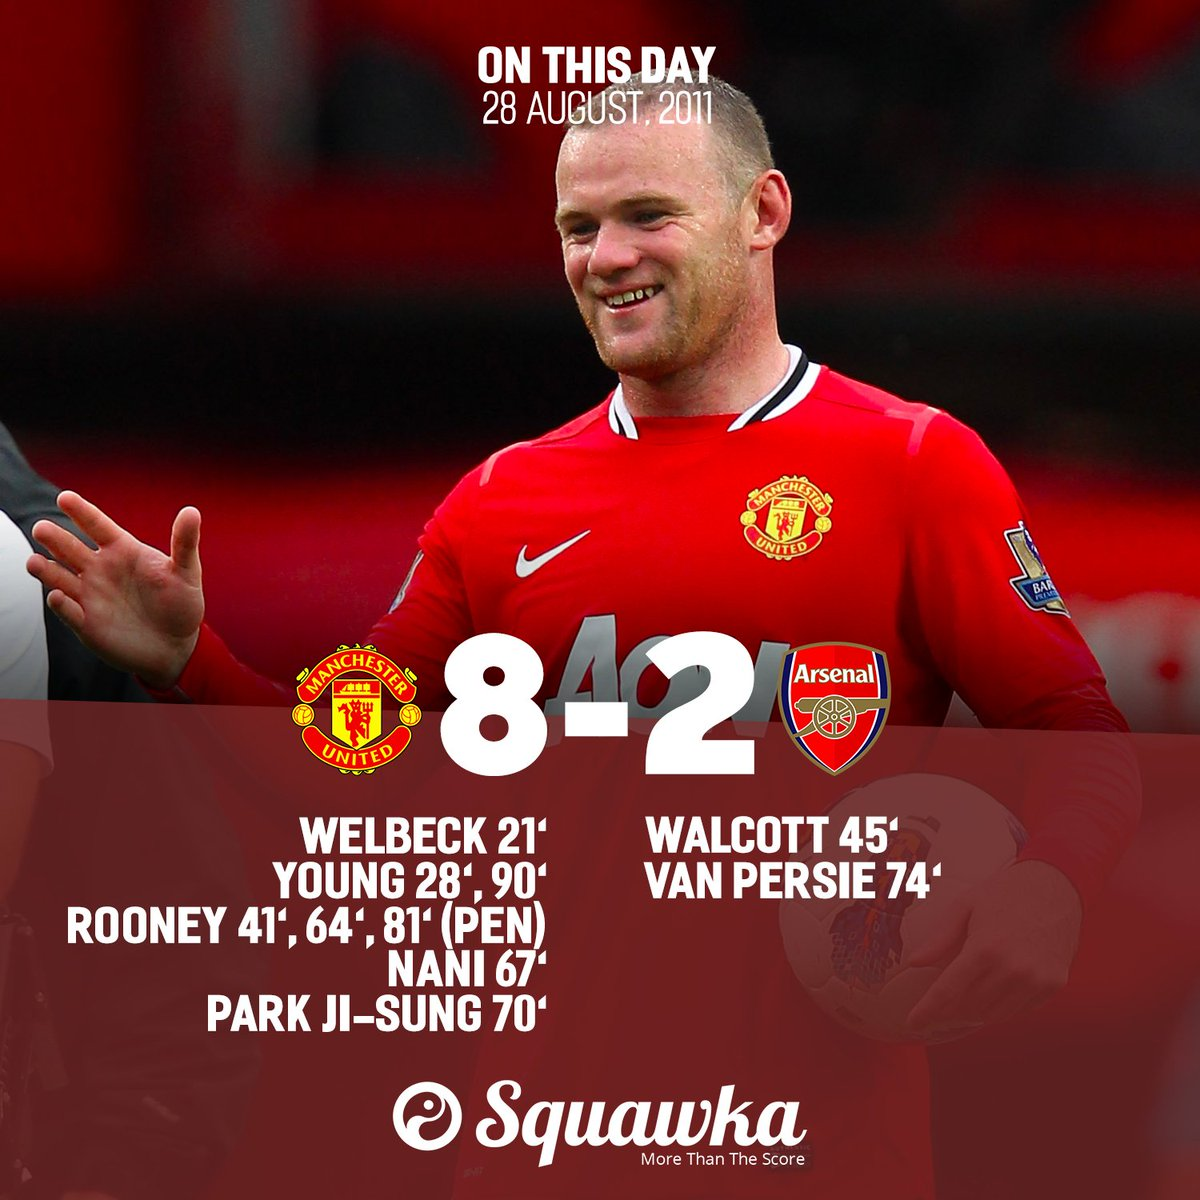 Squawka Football On Twitter On This Day In 2011 Man Utd Beat Arsenal 8 2 At Old Trafford In The Premier League Arsenal S Biggest Defeat For 115 Years Https T Co Uvmtsrzqy8